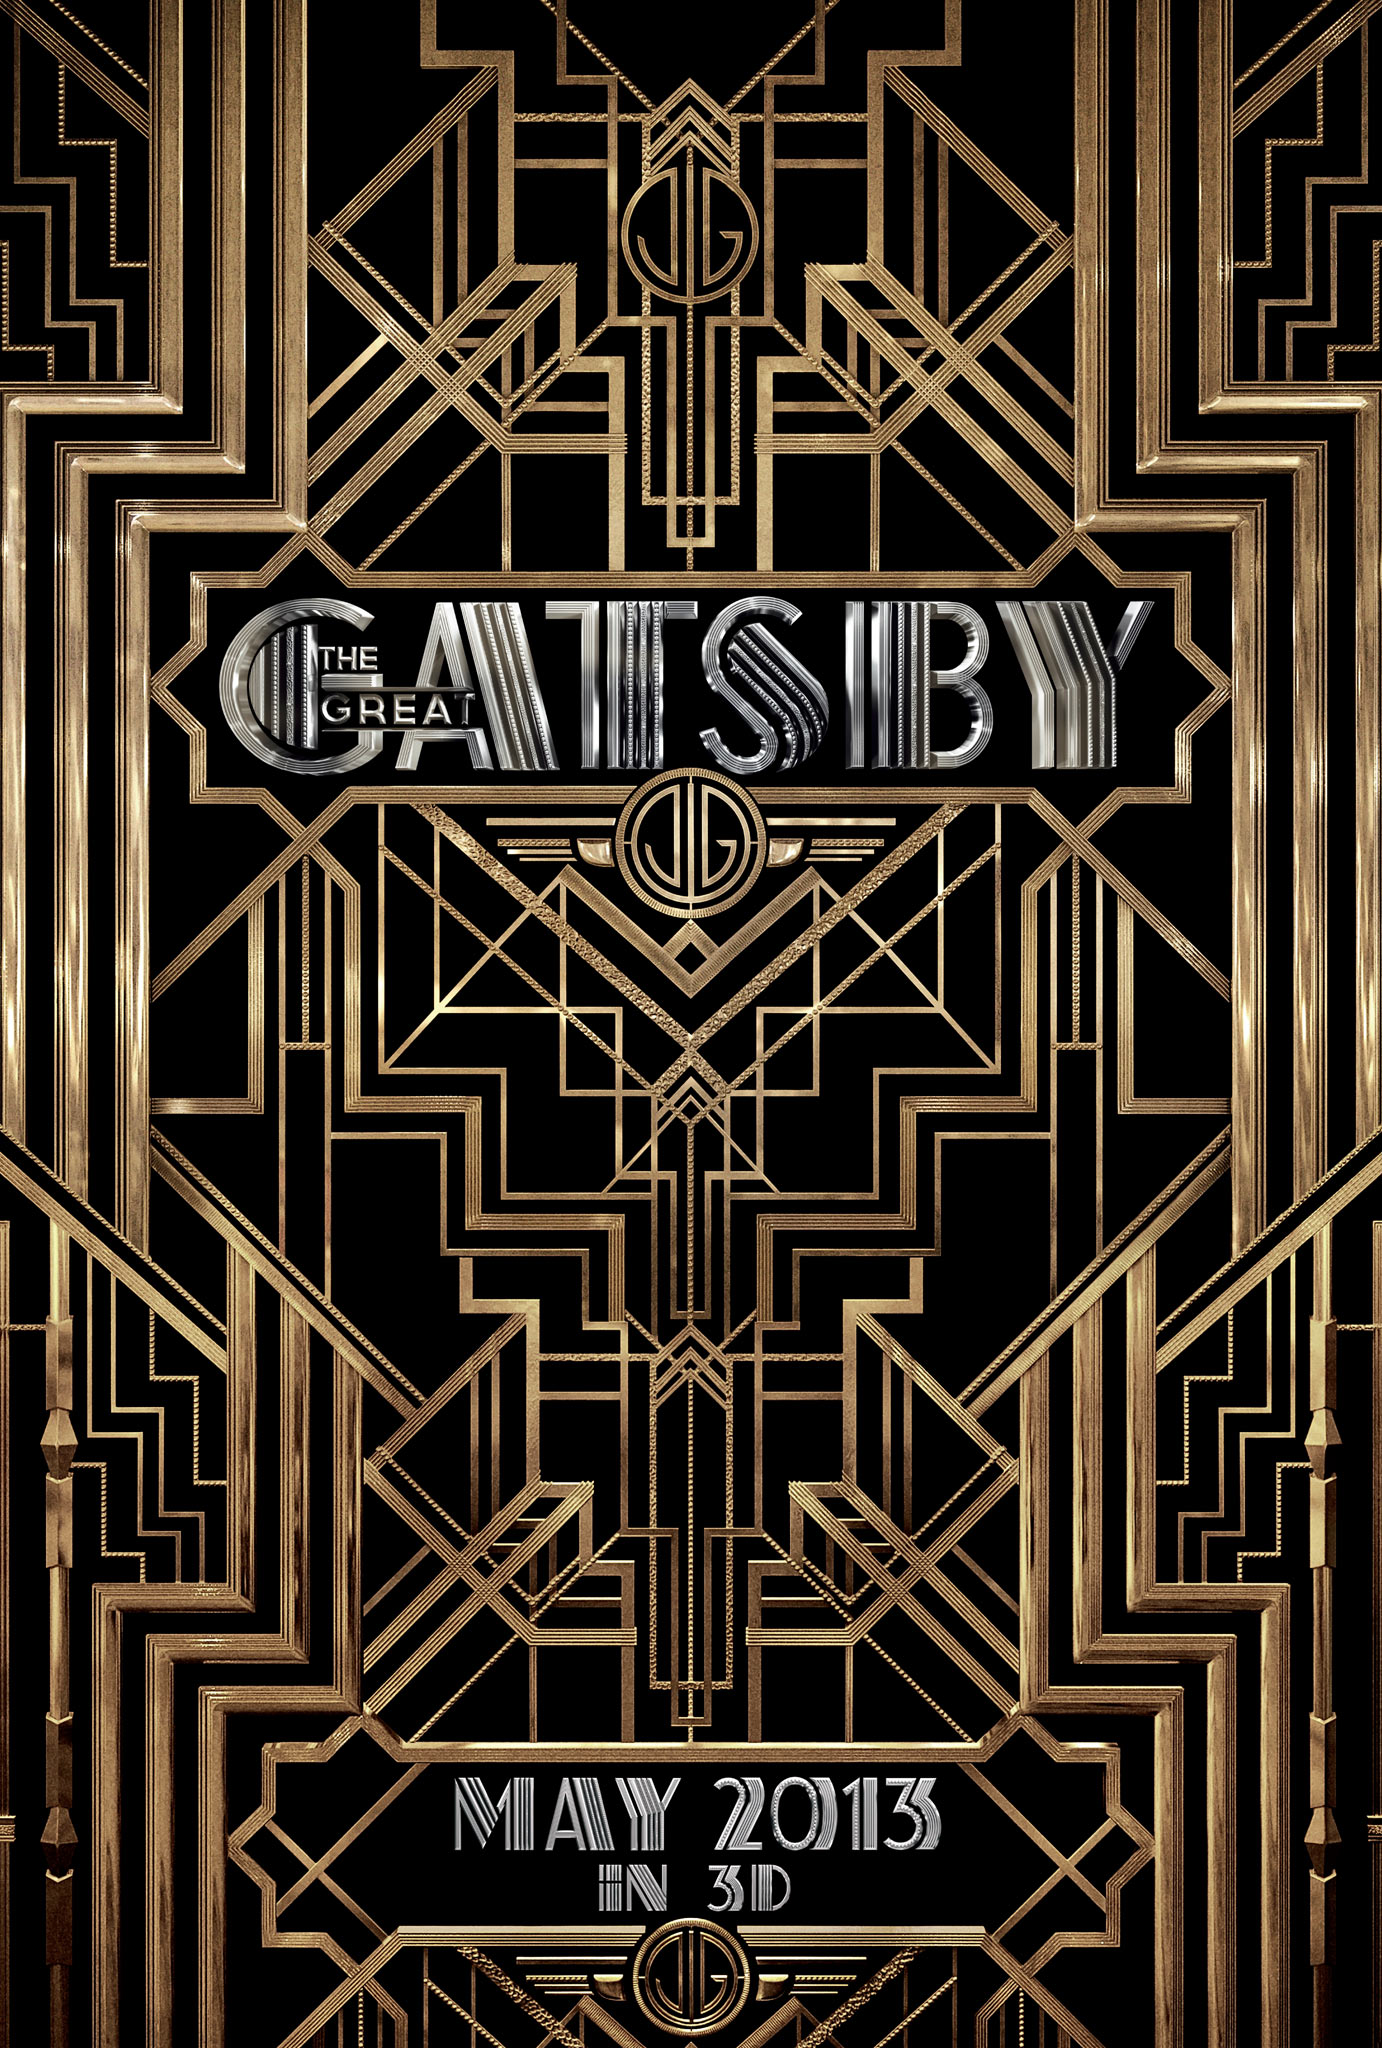 Contrast theme of Brave New World and Great Gatsby?